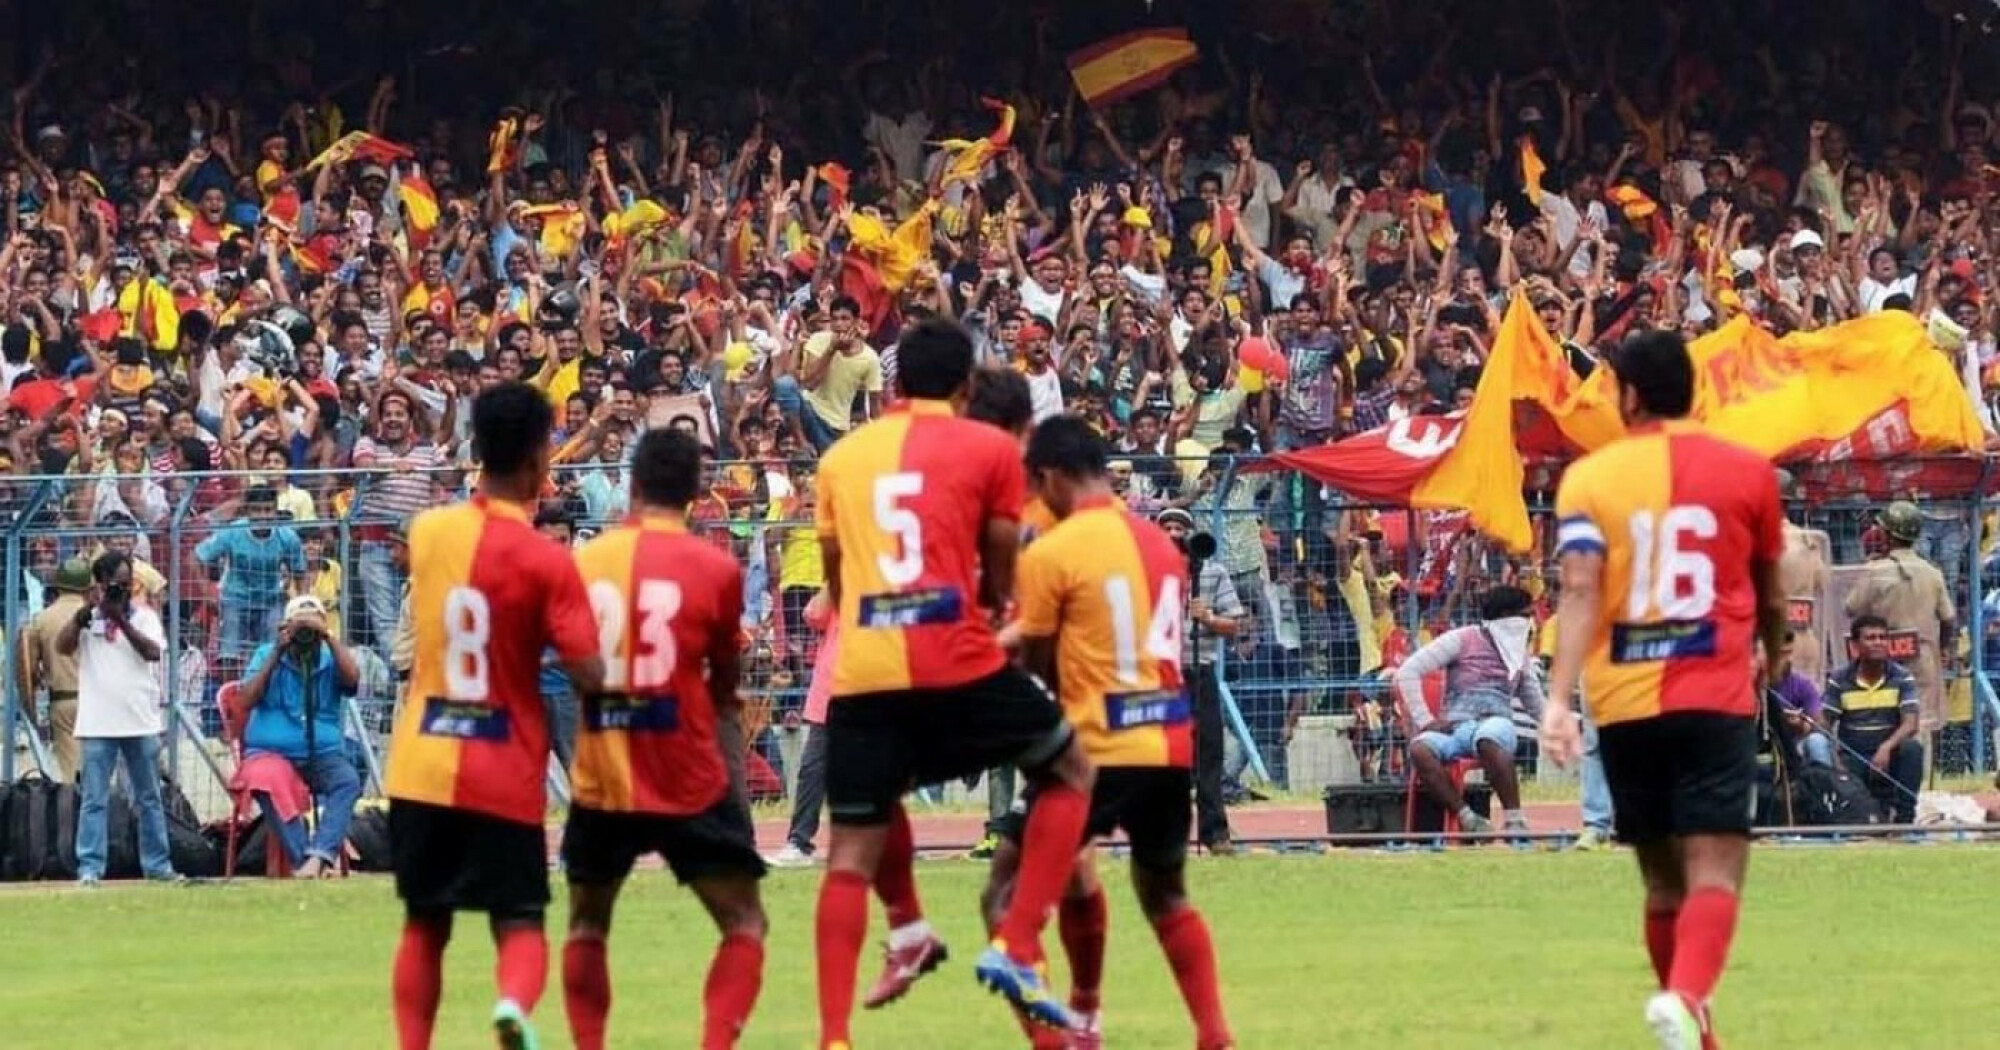 East bengal and Mohun Bagan could move to the ISL